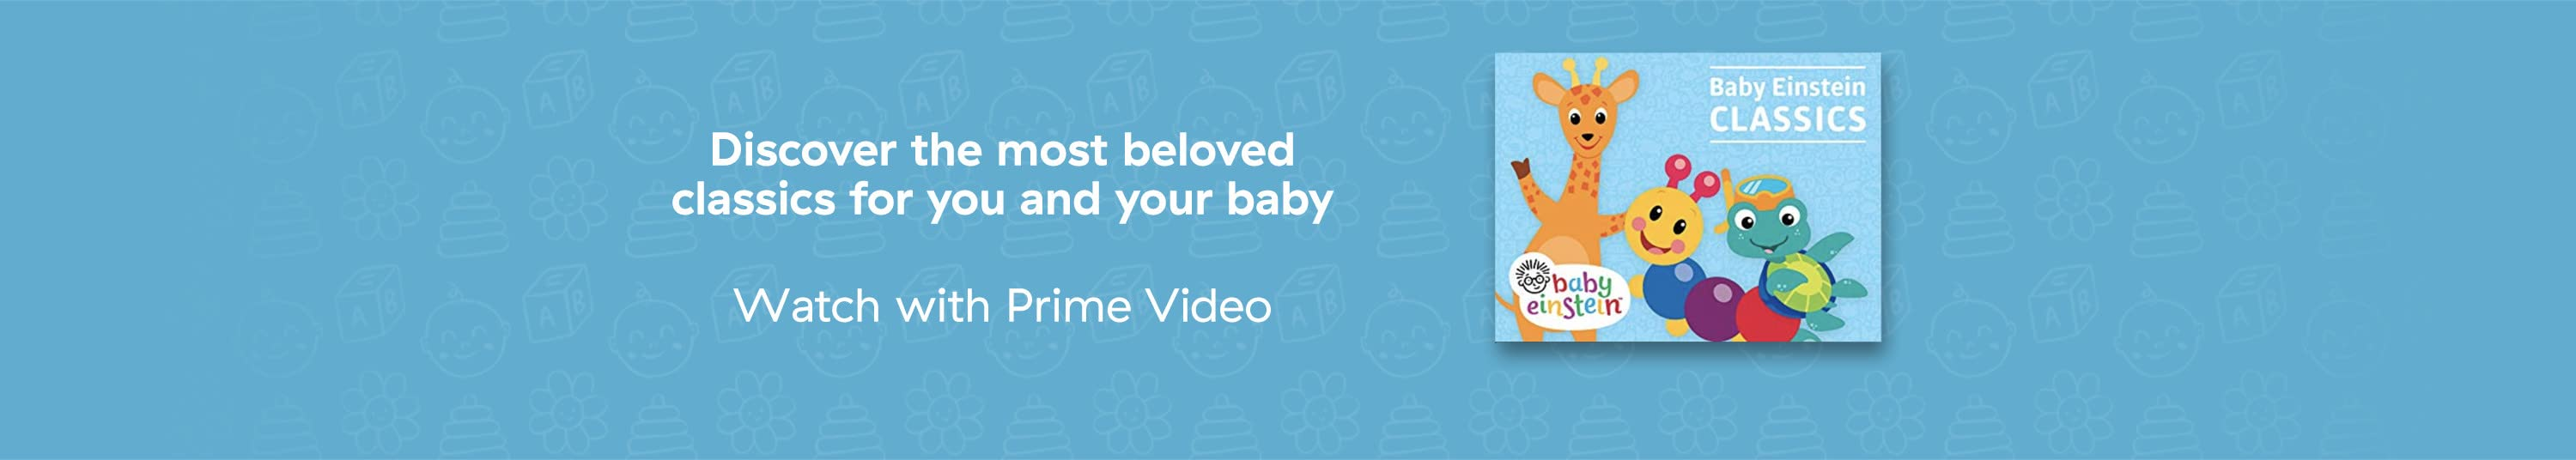 Discover the most beloved classics for you and your baby